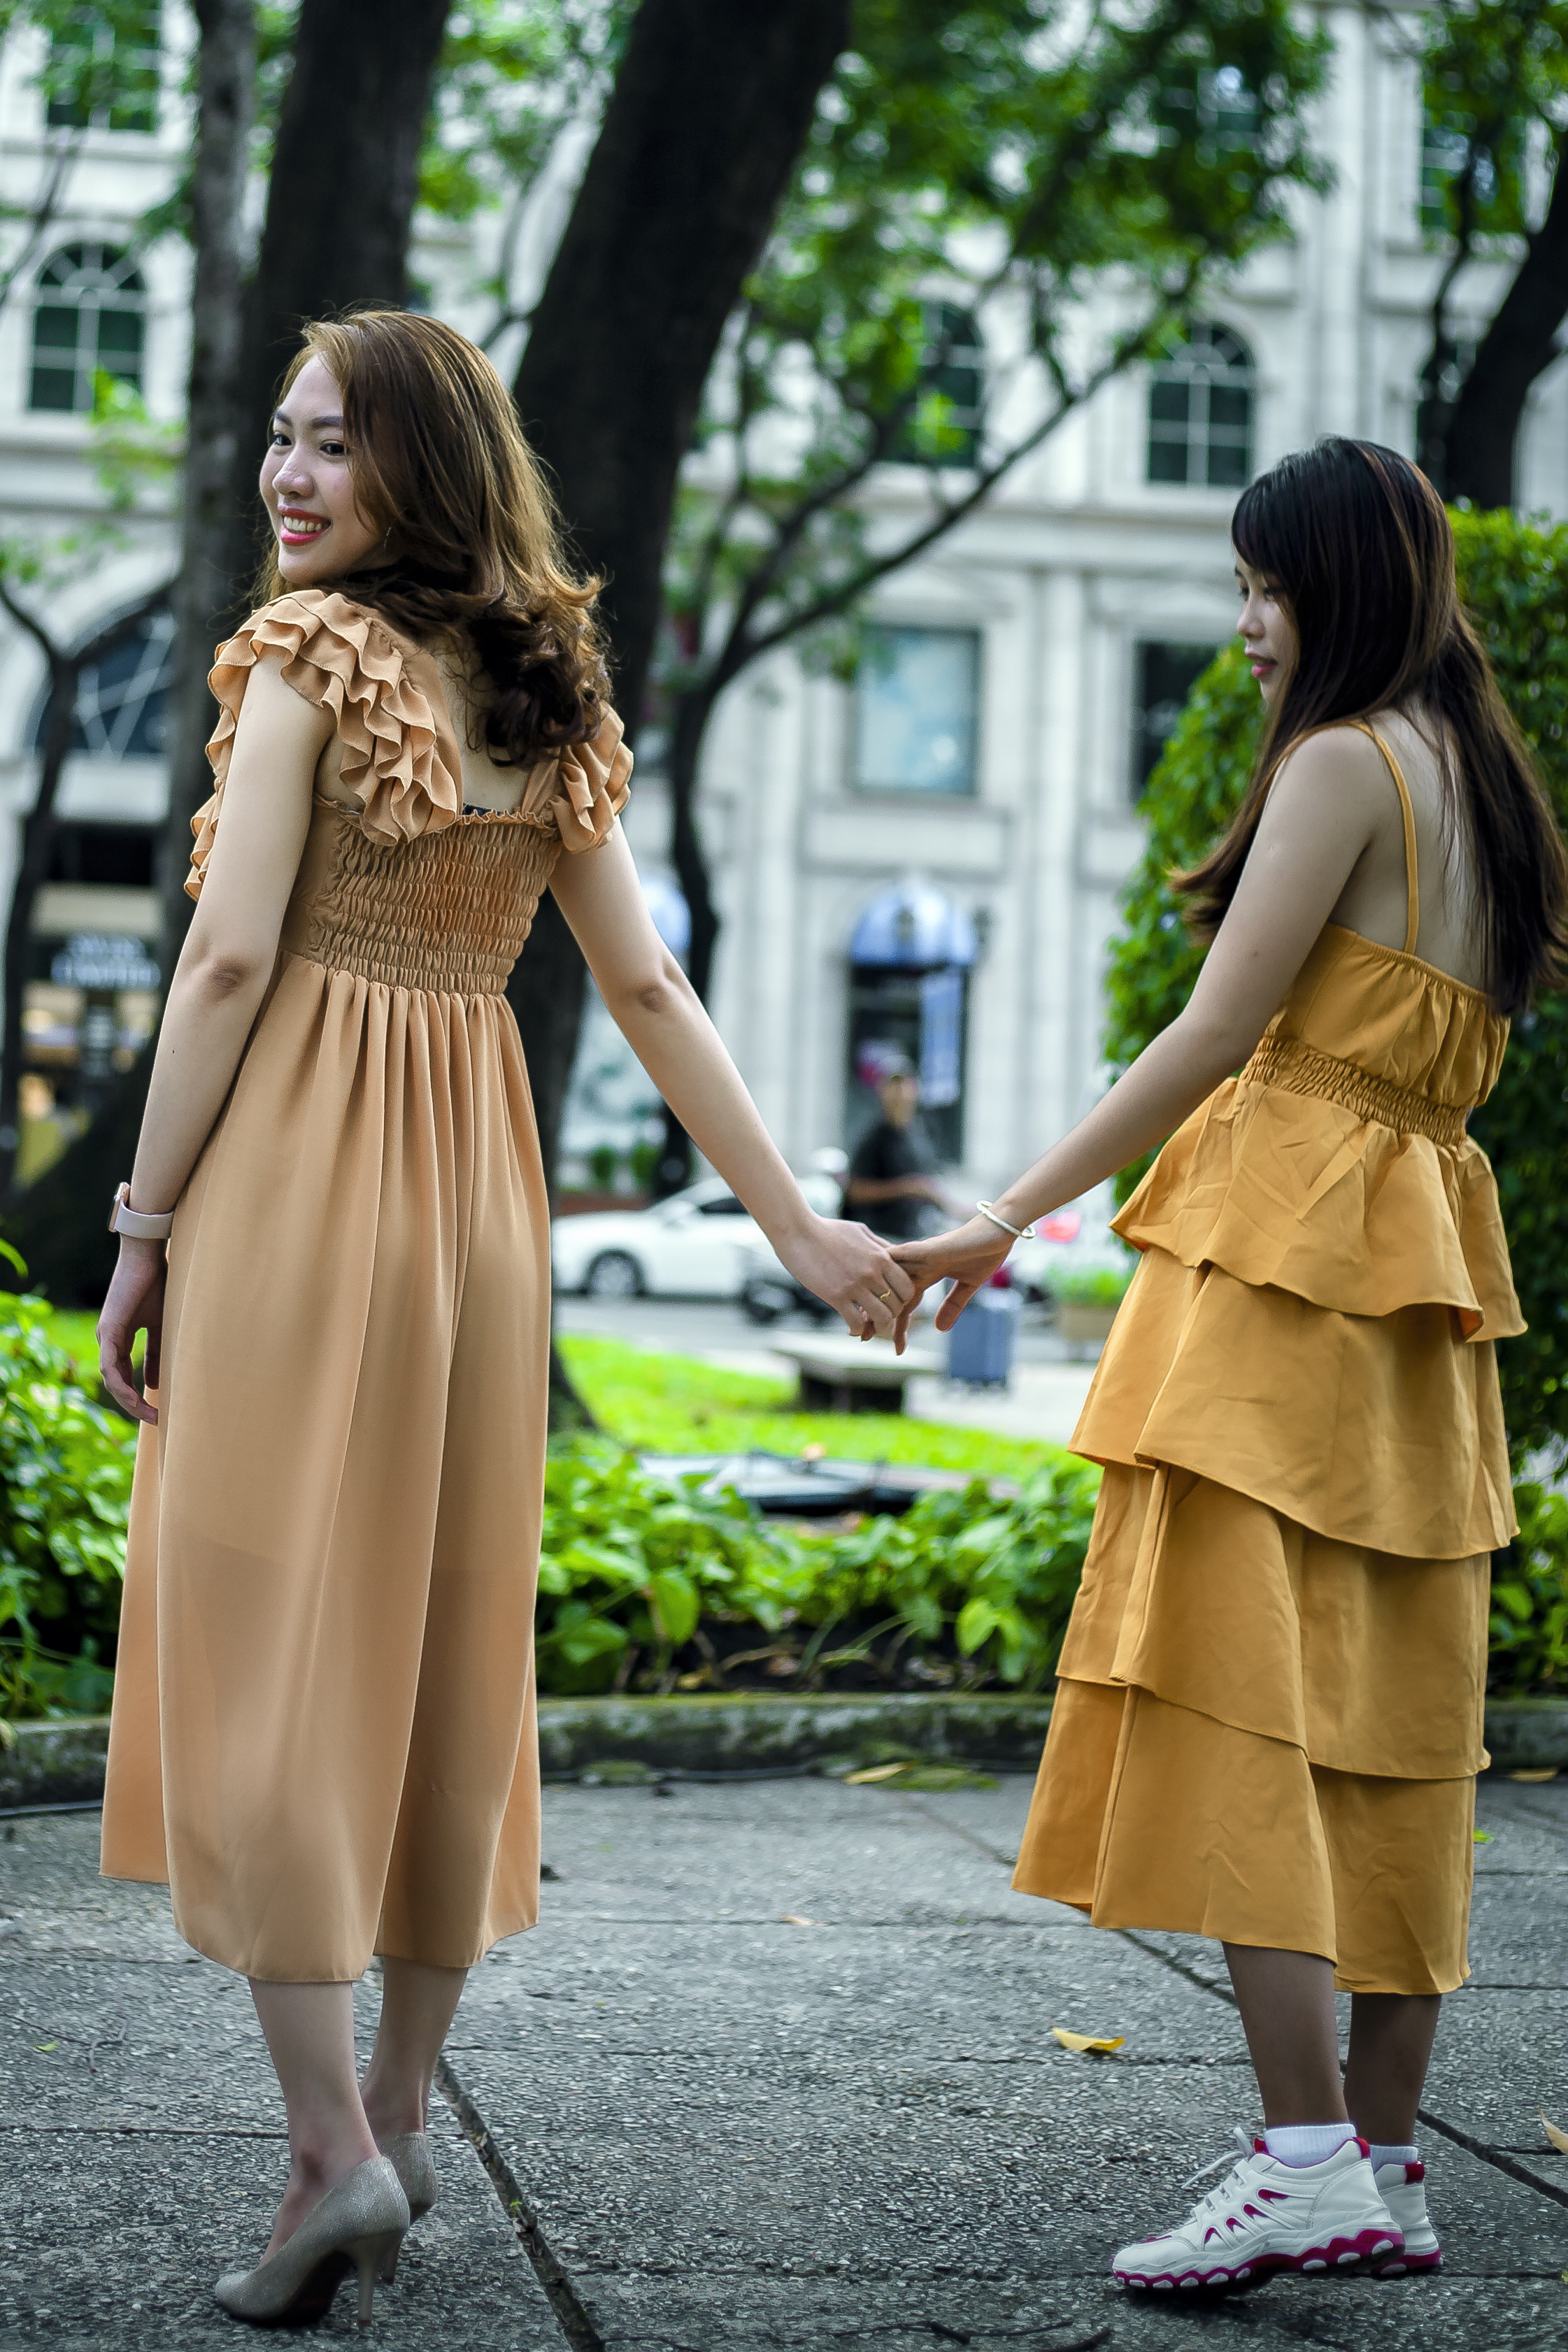 Photo of Women Wearing Dress While Holding Hands